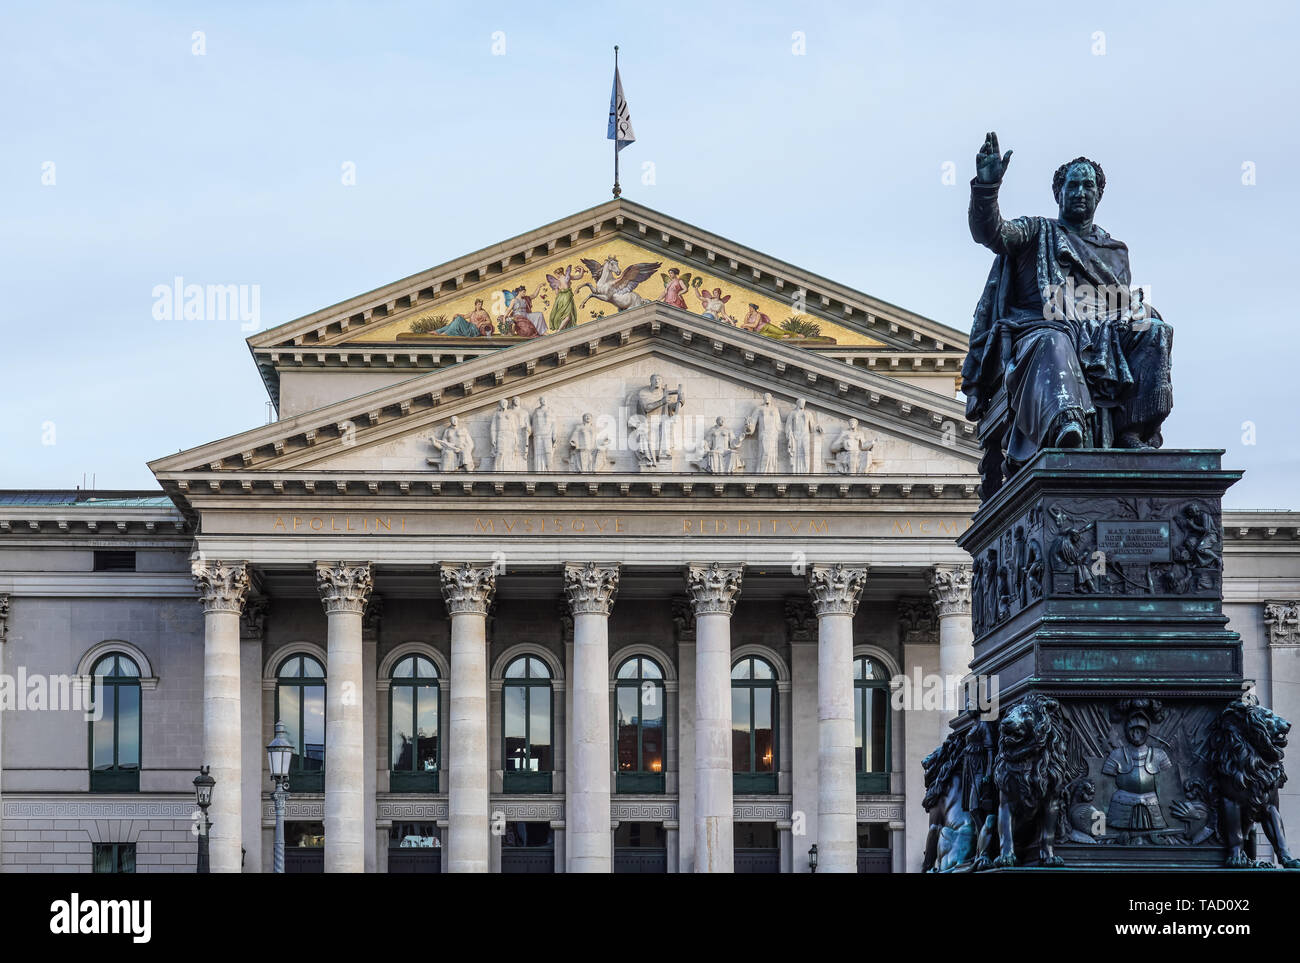 The National Theatre of Munich - Residenztheater at Max-Joseph-Platz Square in Munich, Germany - Stock Image